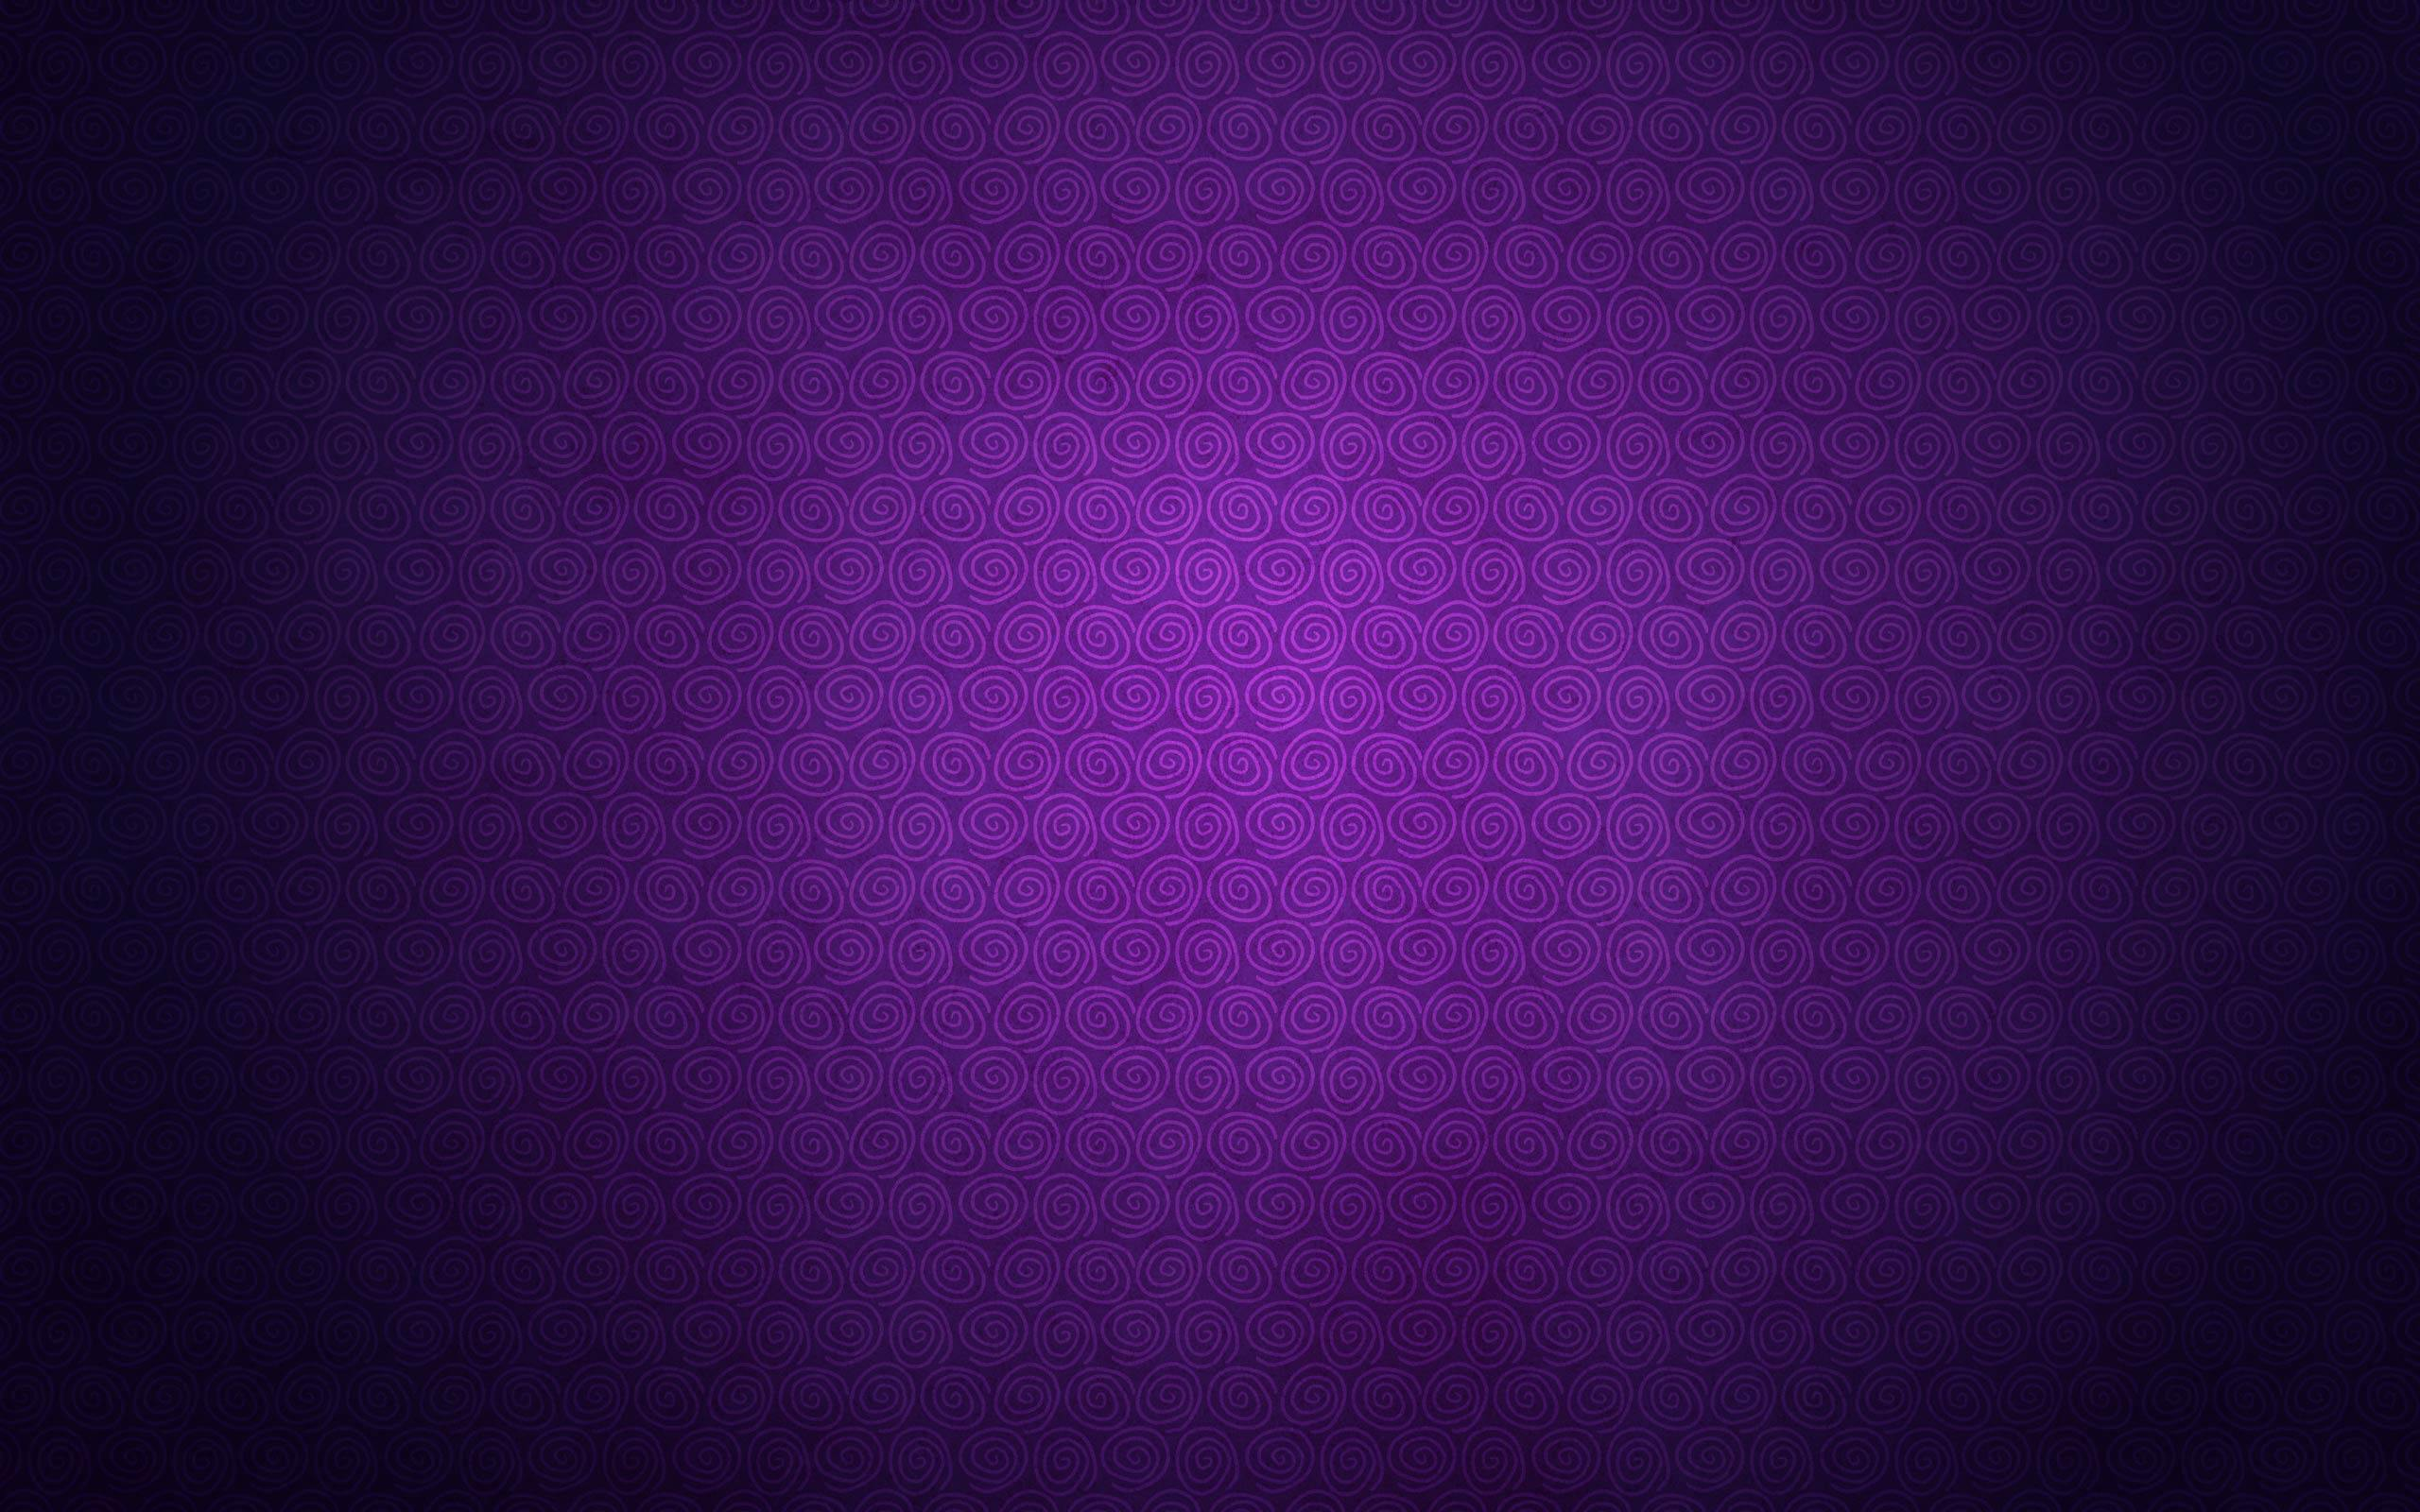 Free Purple Backgrounds 18531 1600x1200 px